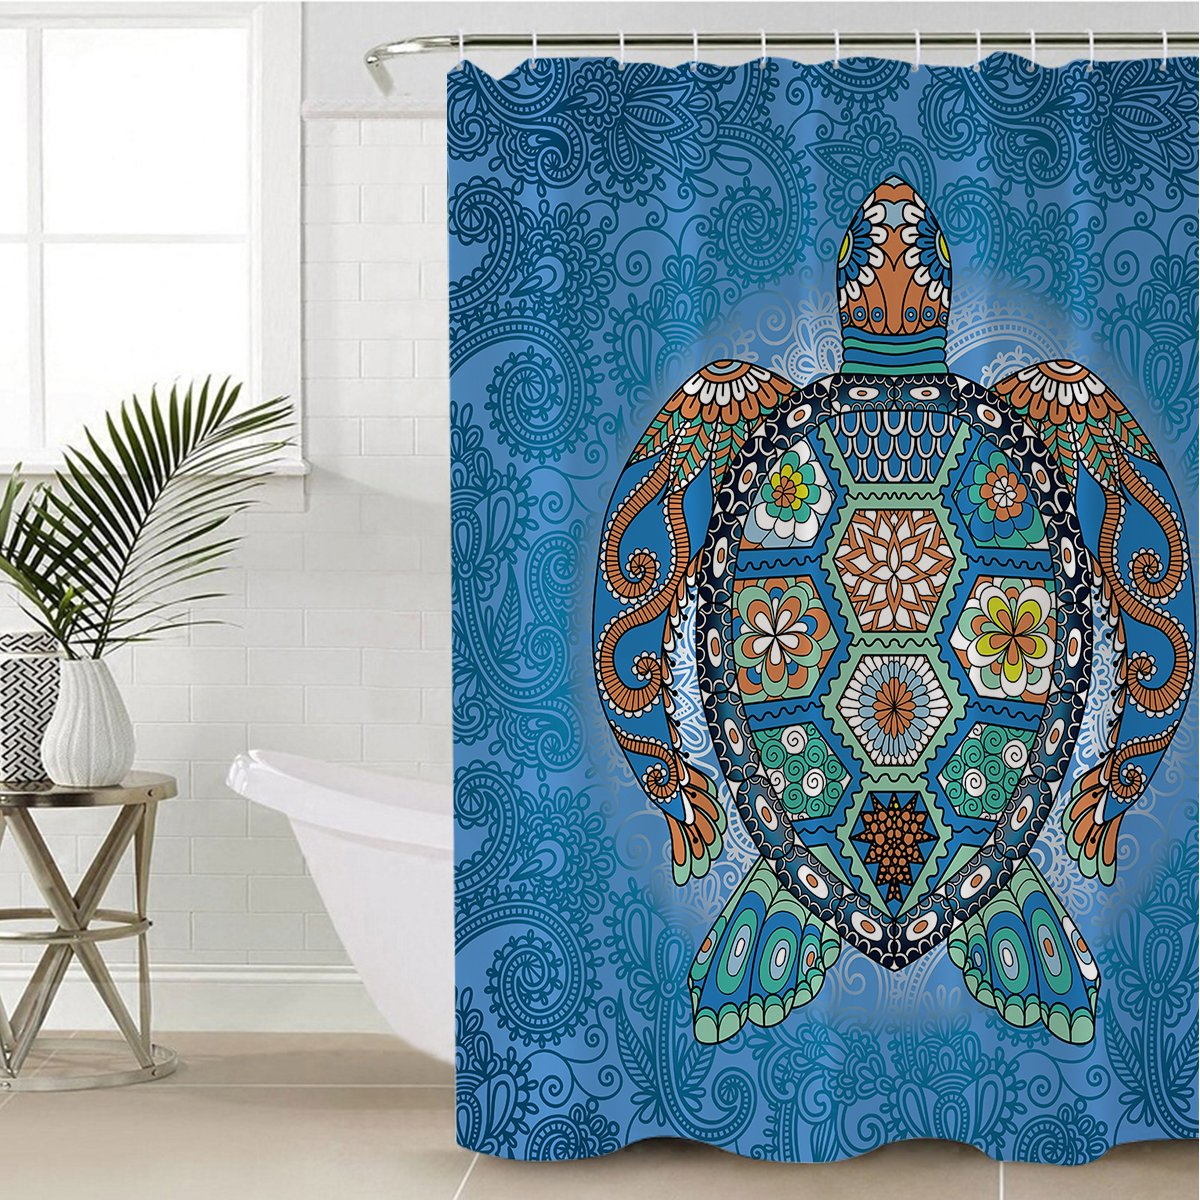 The Original Turtle Totem Shower Curtain